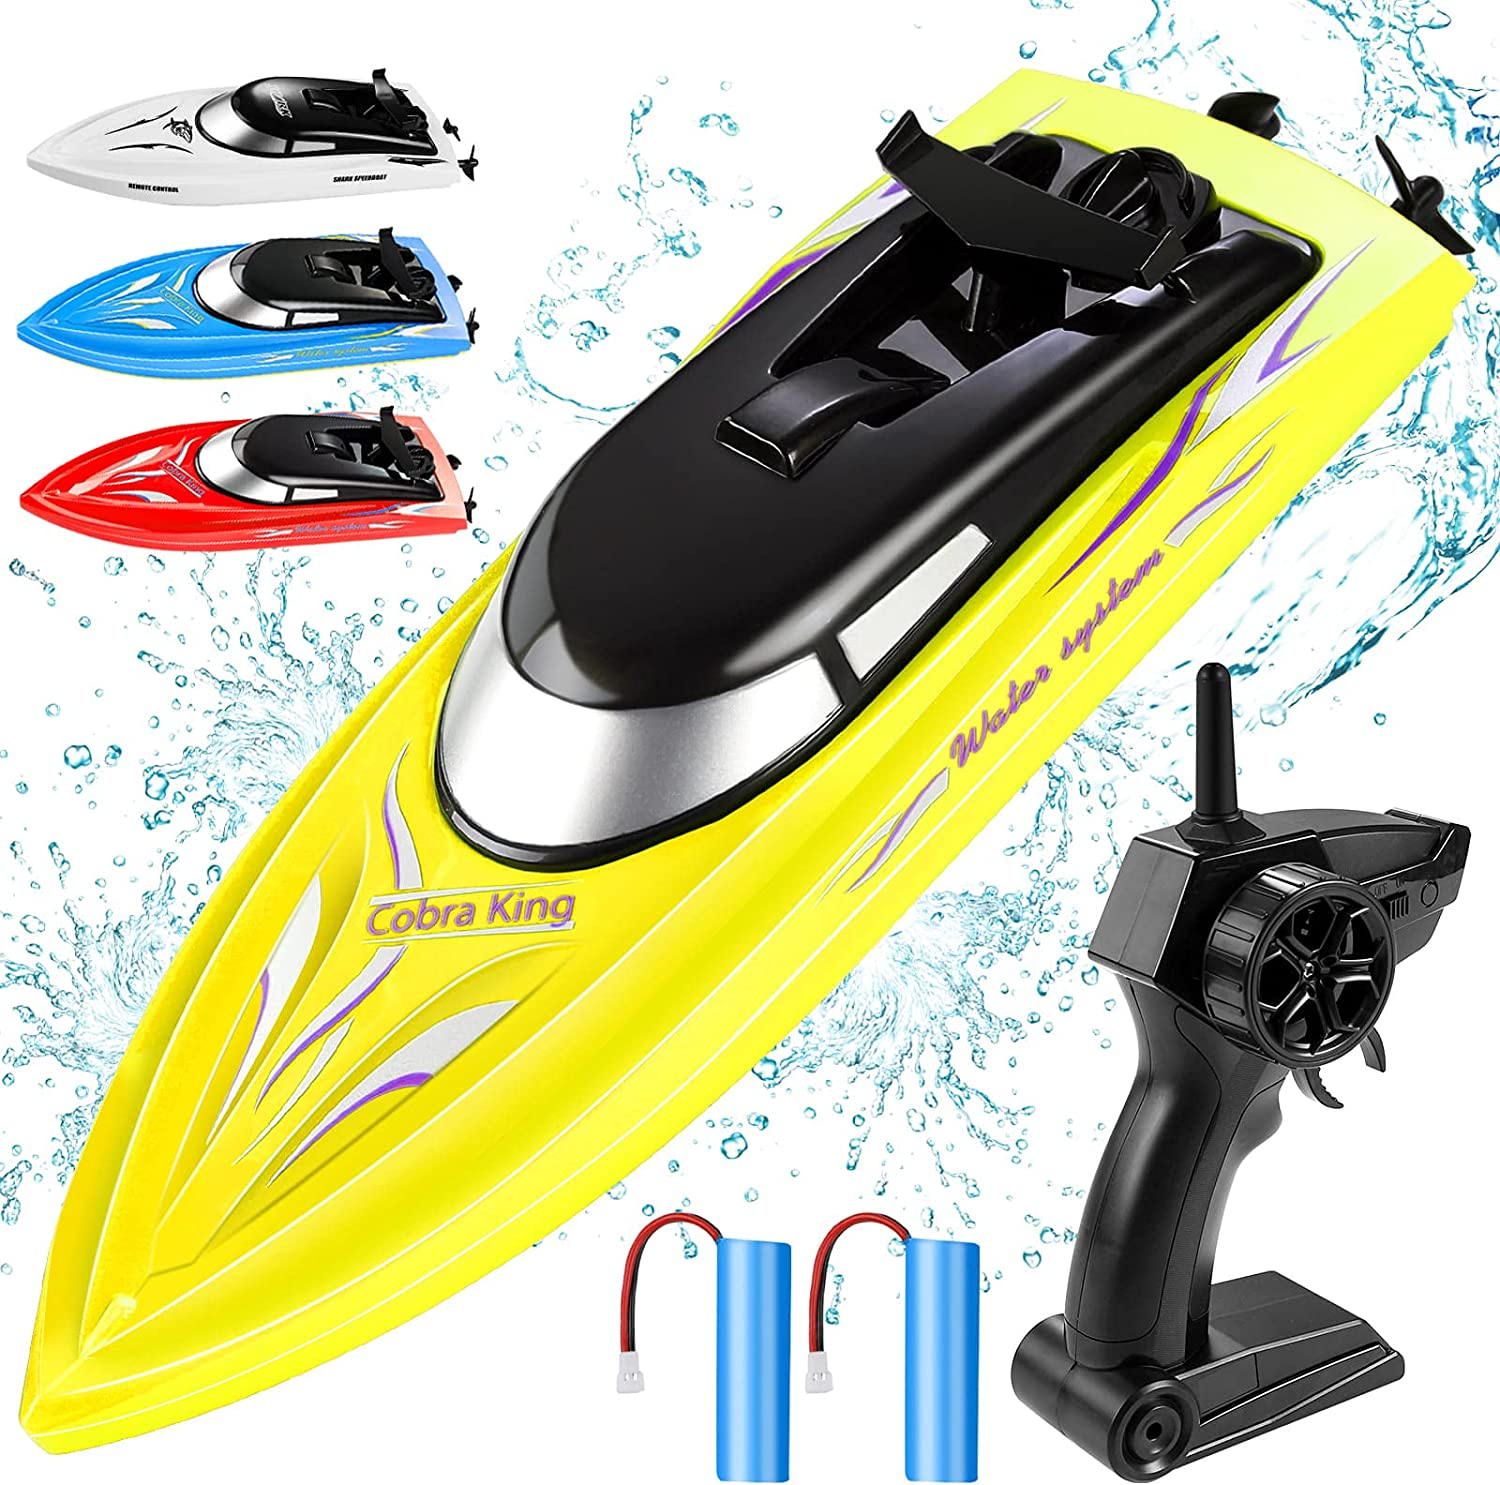 RC Boat Remote Control Boats for Pools and Lakes Wemfg RH701 15km ...